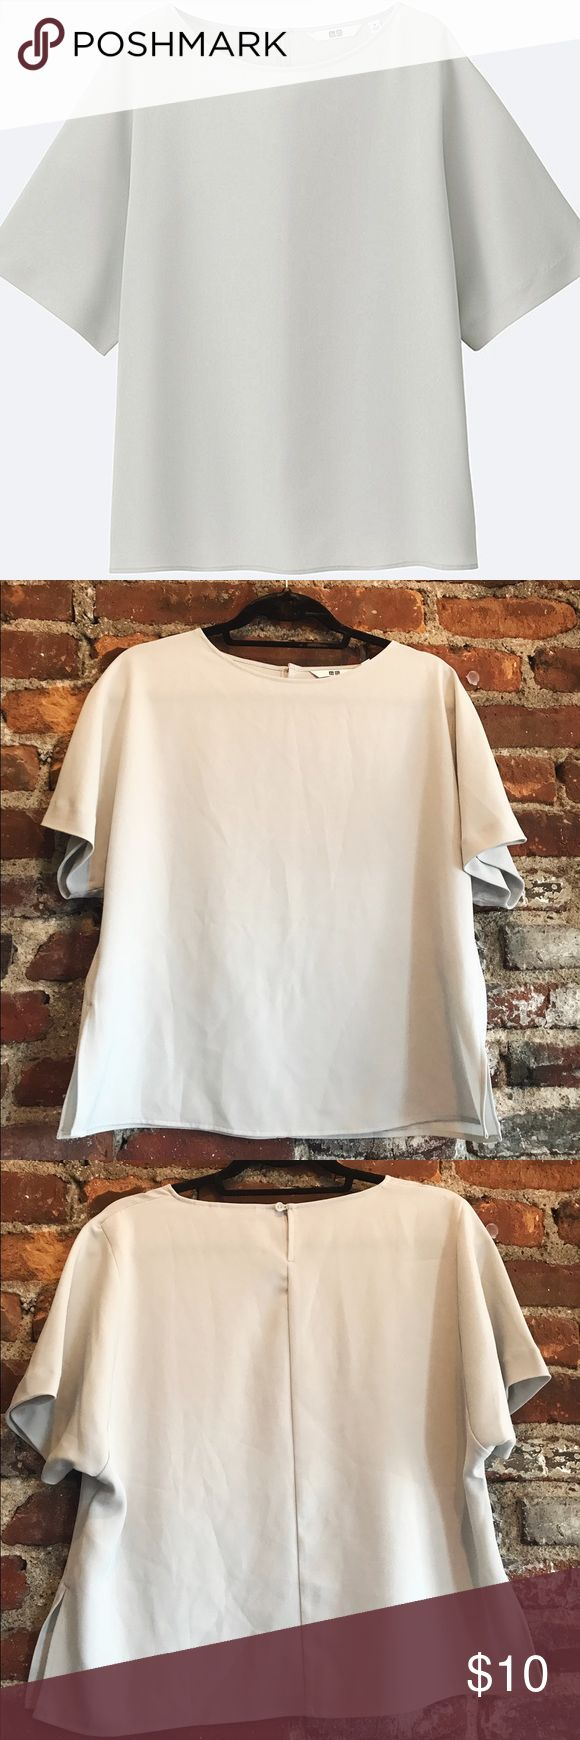 ✨Uniqlo Professional Drape Blouse✨ This blouse is gorgeous for a professional yet trendy look! Pair it with slim cut pants or dramatic culottes - this top is the perfect versatile basic. It is LIKE NEW only worn one time. It runs slightly big as it is meant to be oversized. Uniqlo Tops Blouses